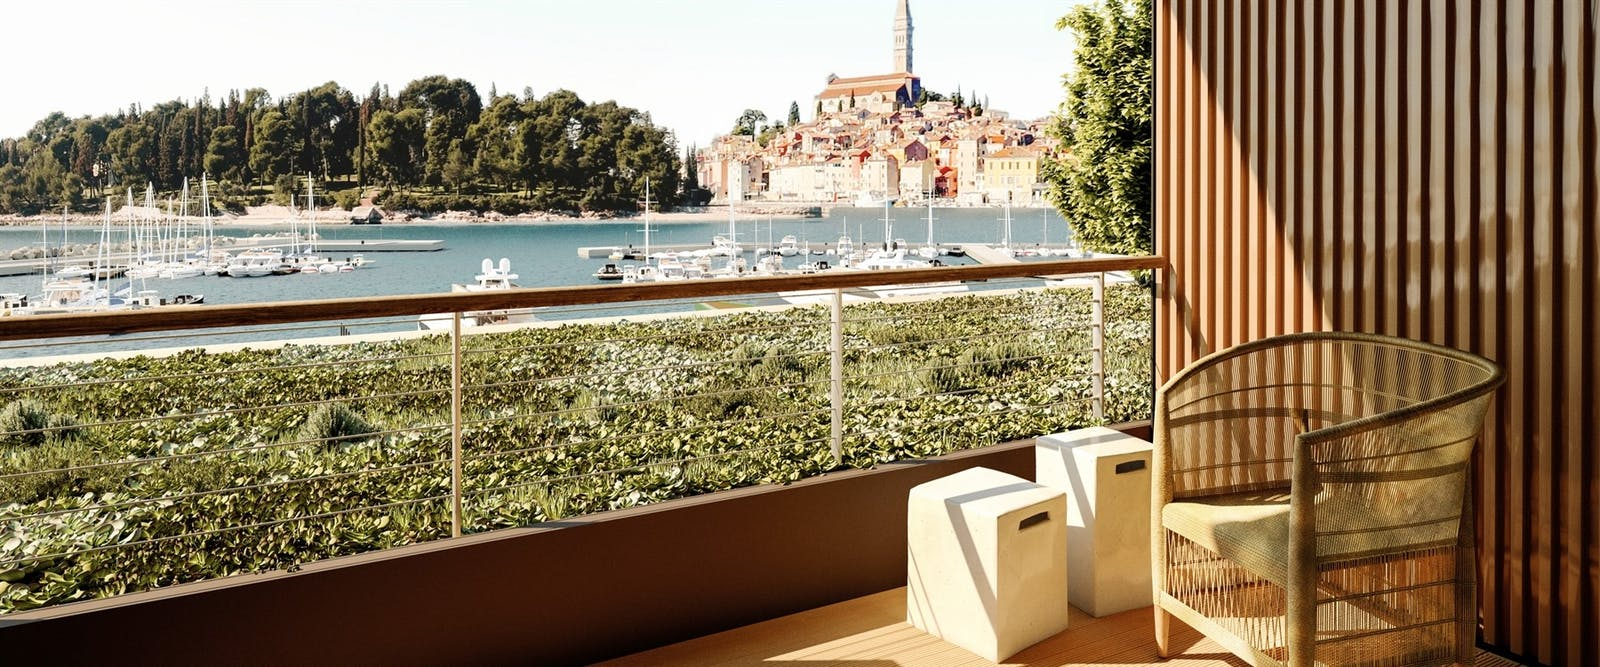 Sea View, Grand Park Hotel, Rovinj, Croatia